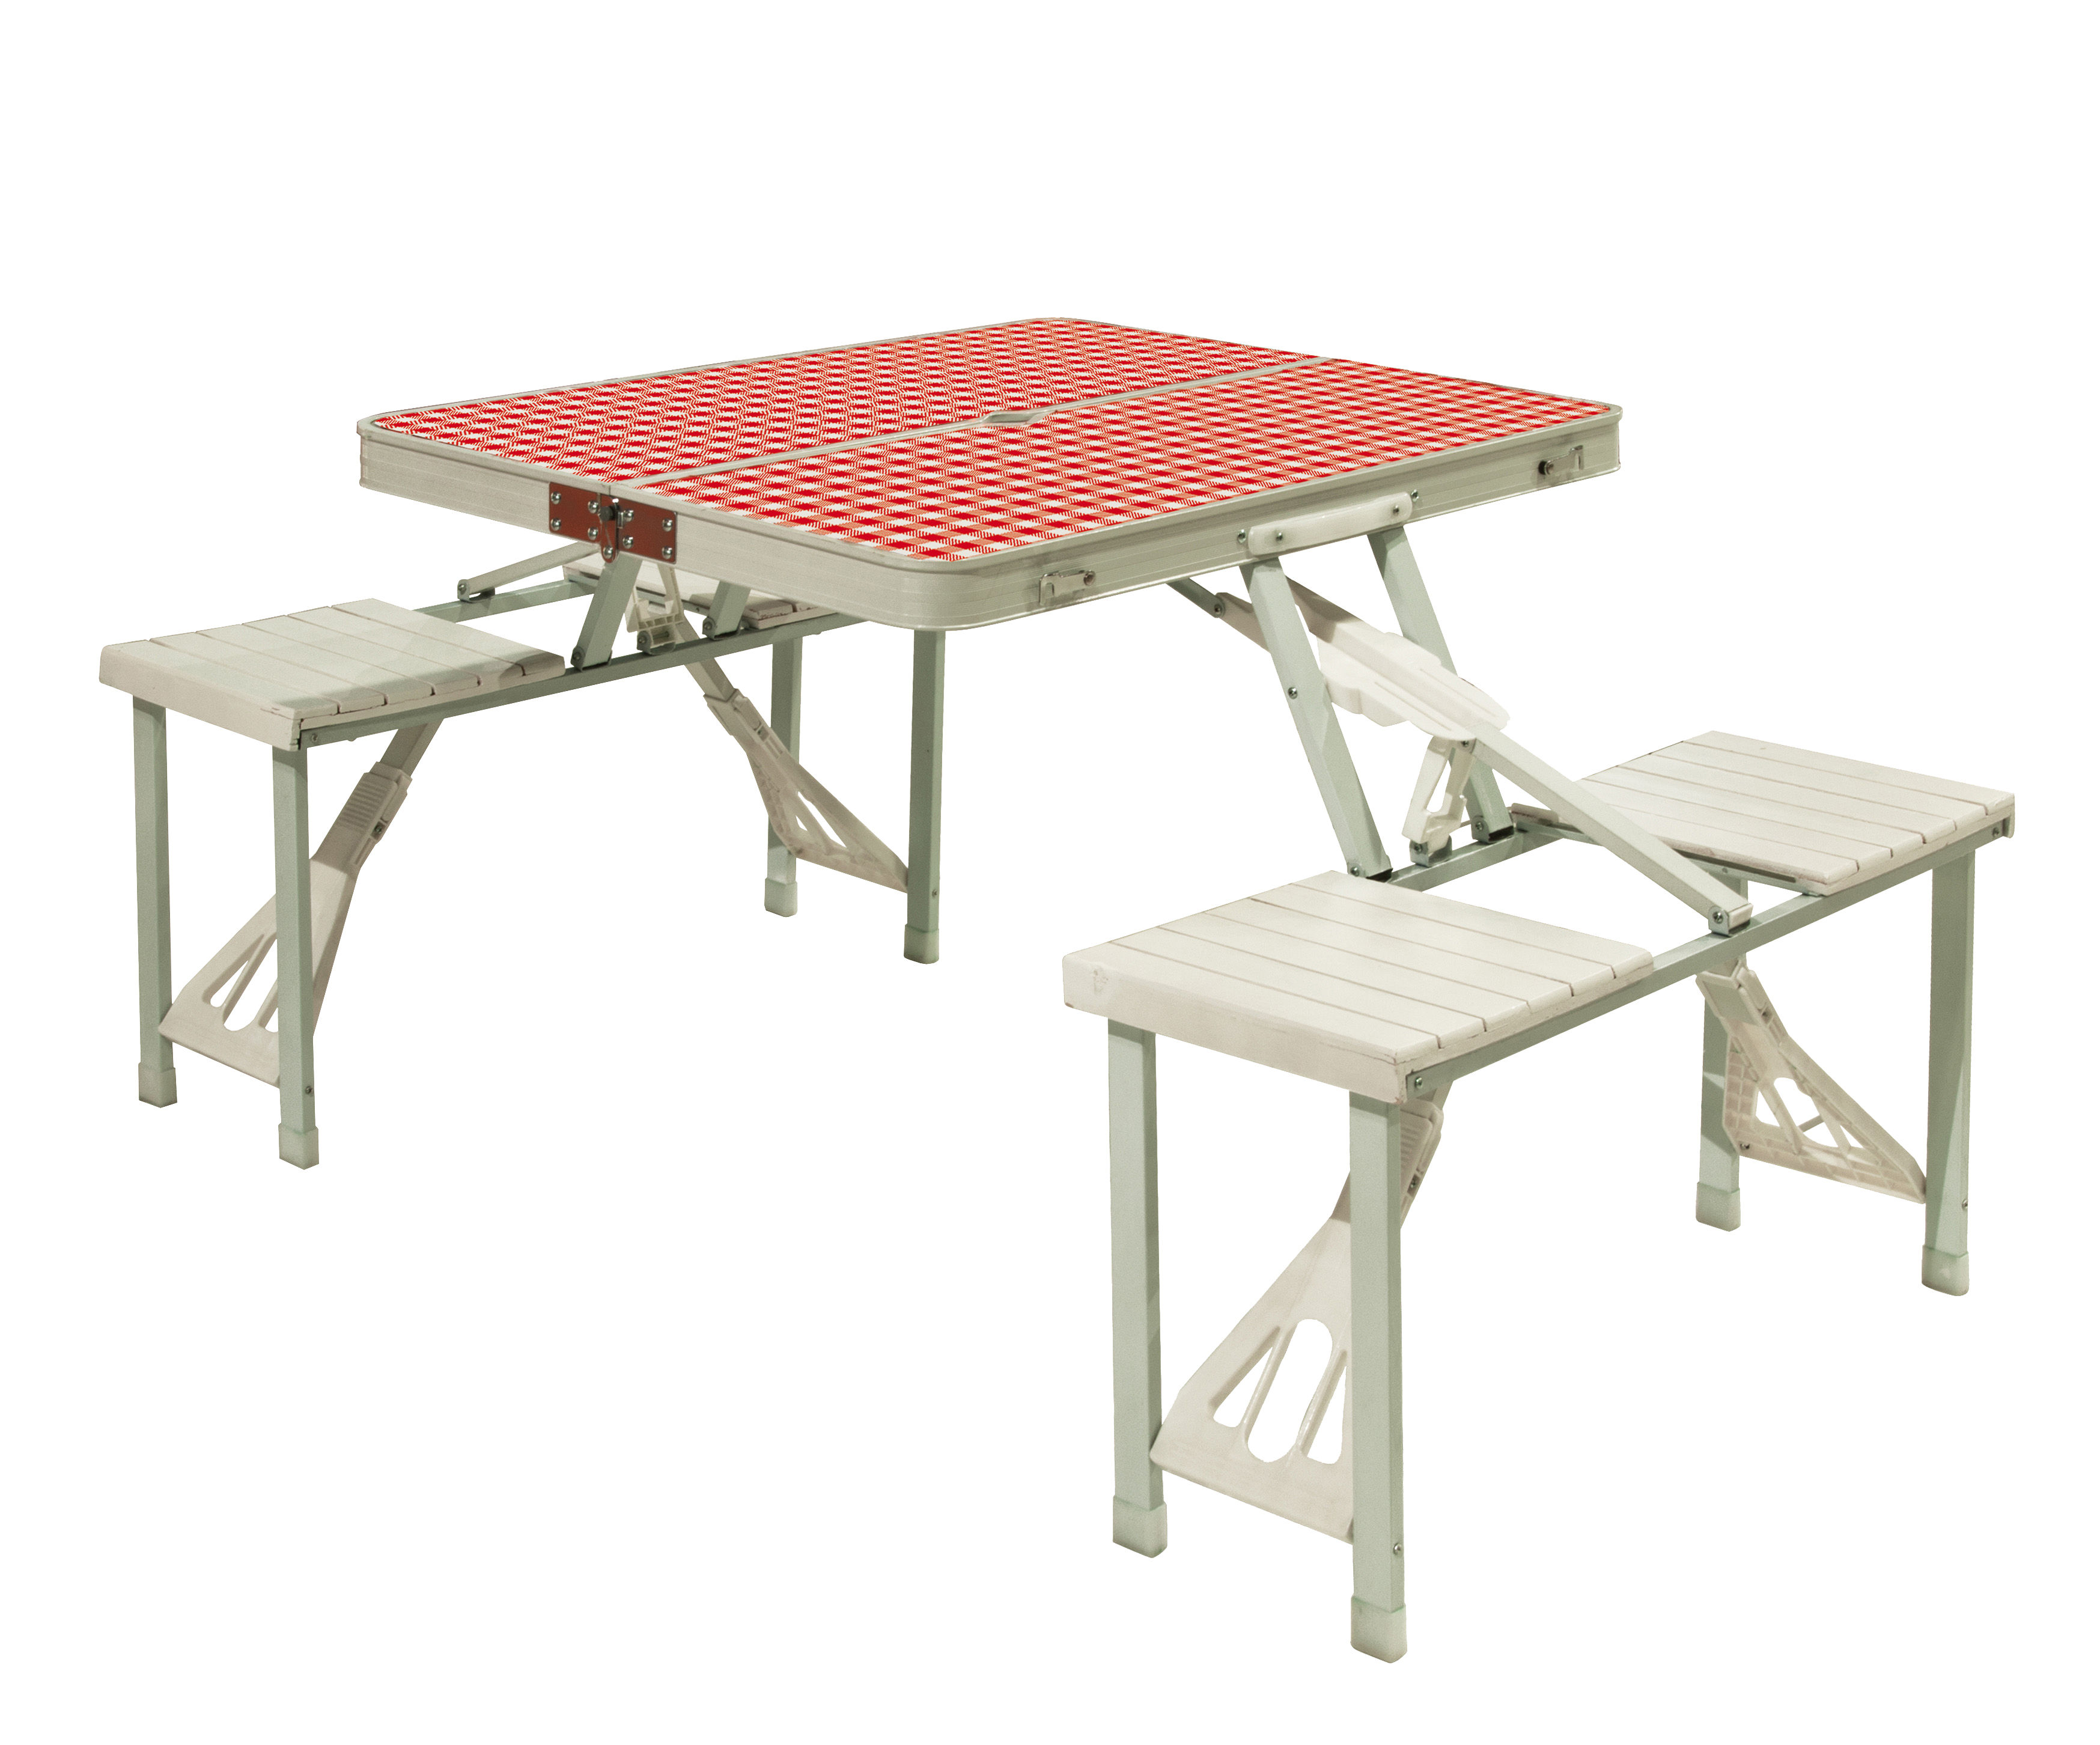 Outdoor - Garden Tables - Festival Table by Seletti - White, red - Metal, Plastic material